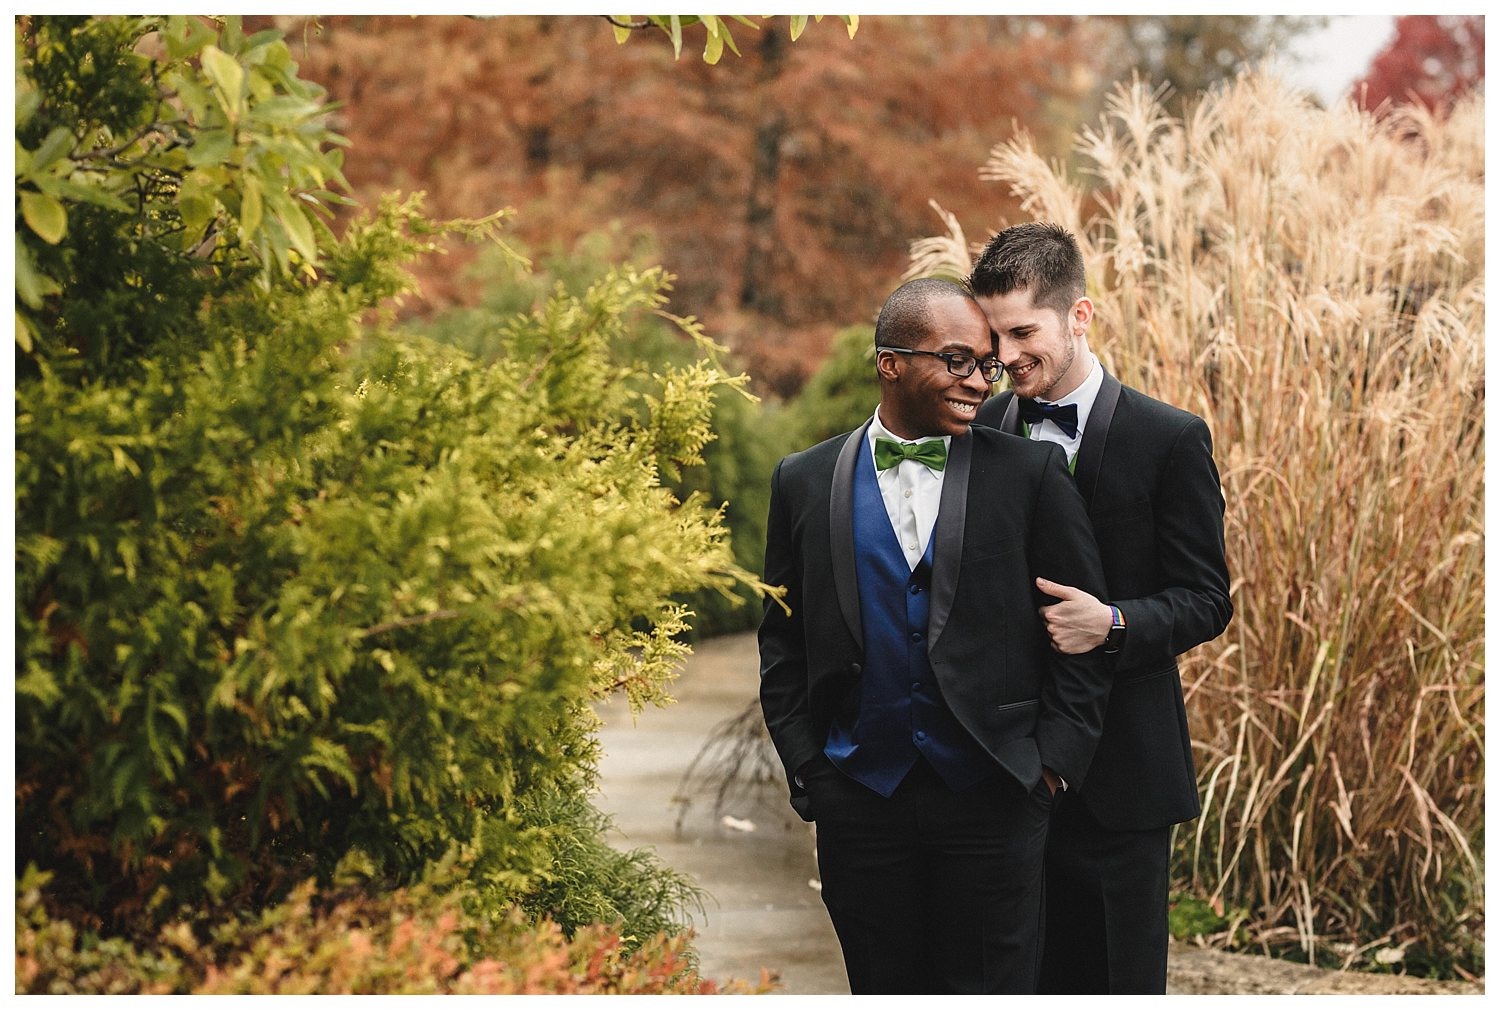 Kelsey_Diane_Photography_Loose_Mansion_Wedding_Photography_Kansas_City_Victor_Lyndsay_0244.jpg